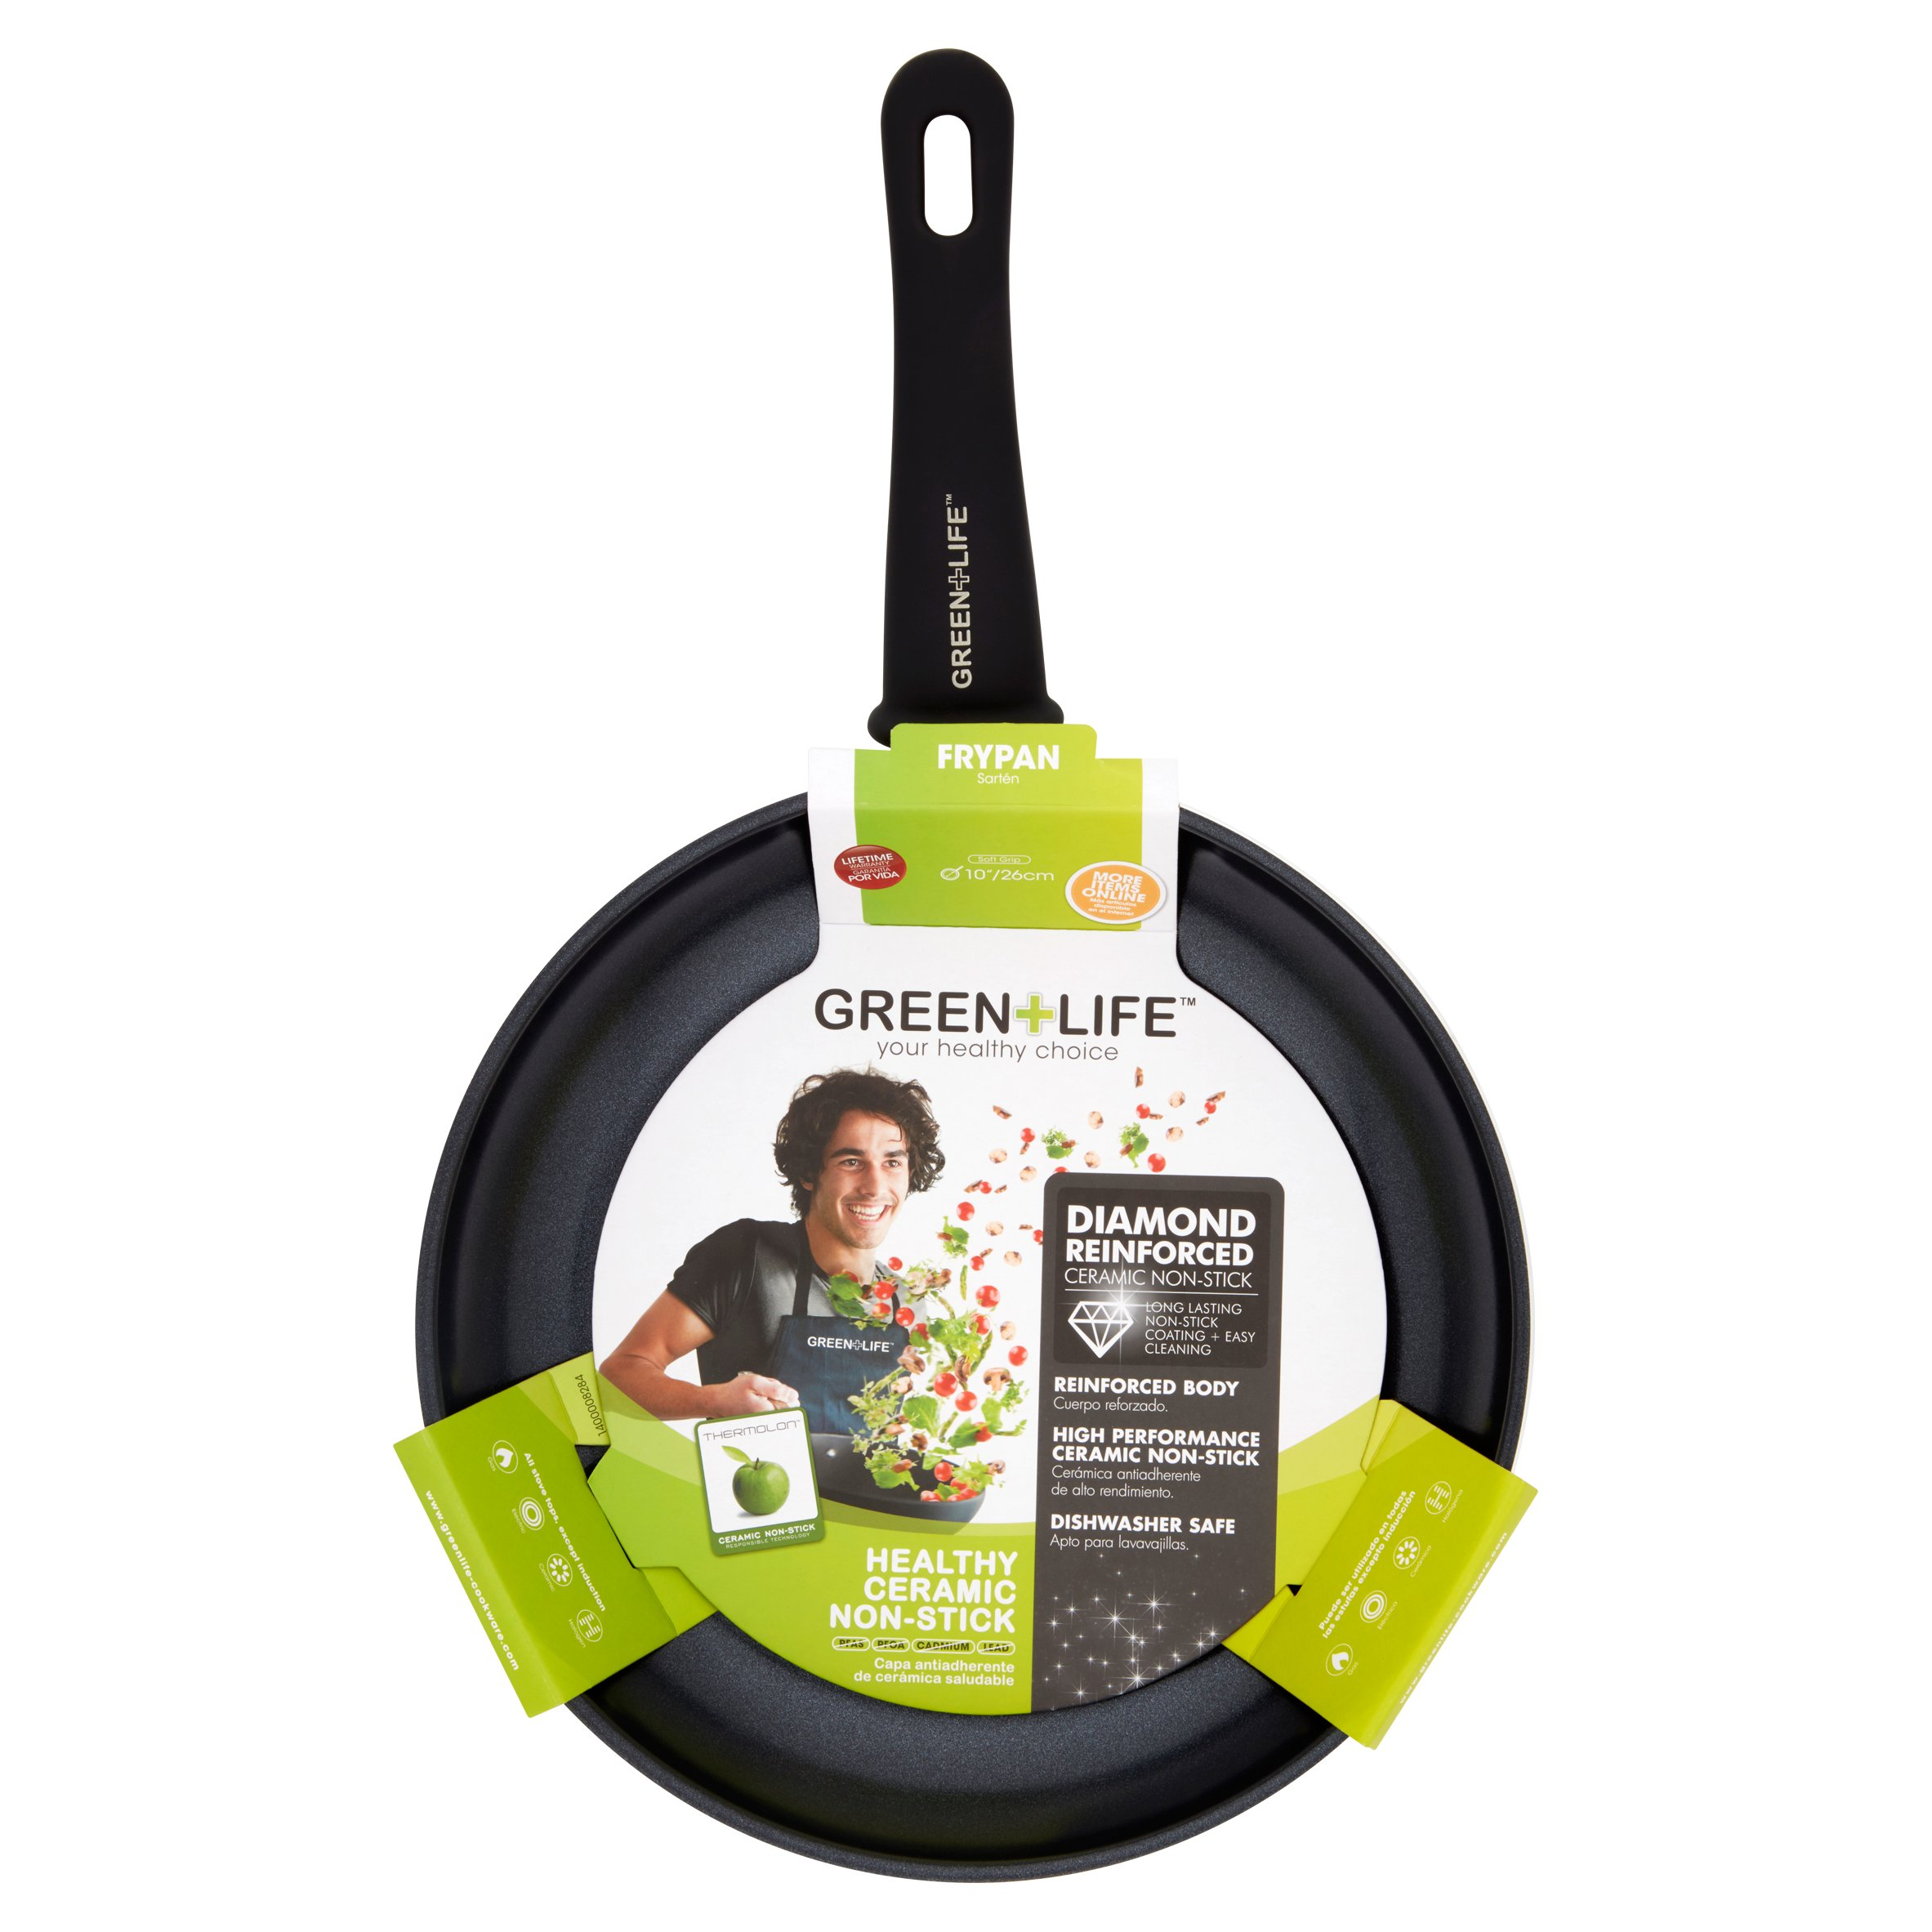 "GreenLife Healthy Ceramic Diamond Reinforced Non-Stick Soft Grip 10"" Frypan"